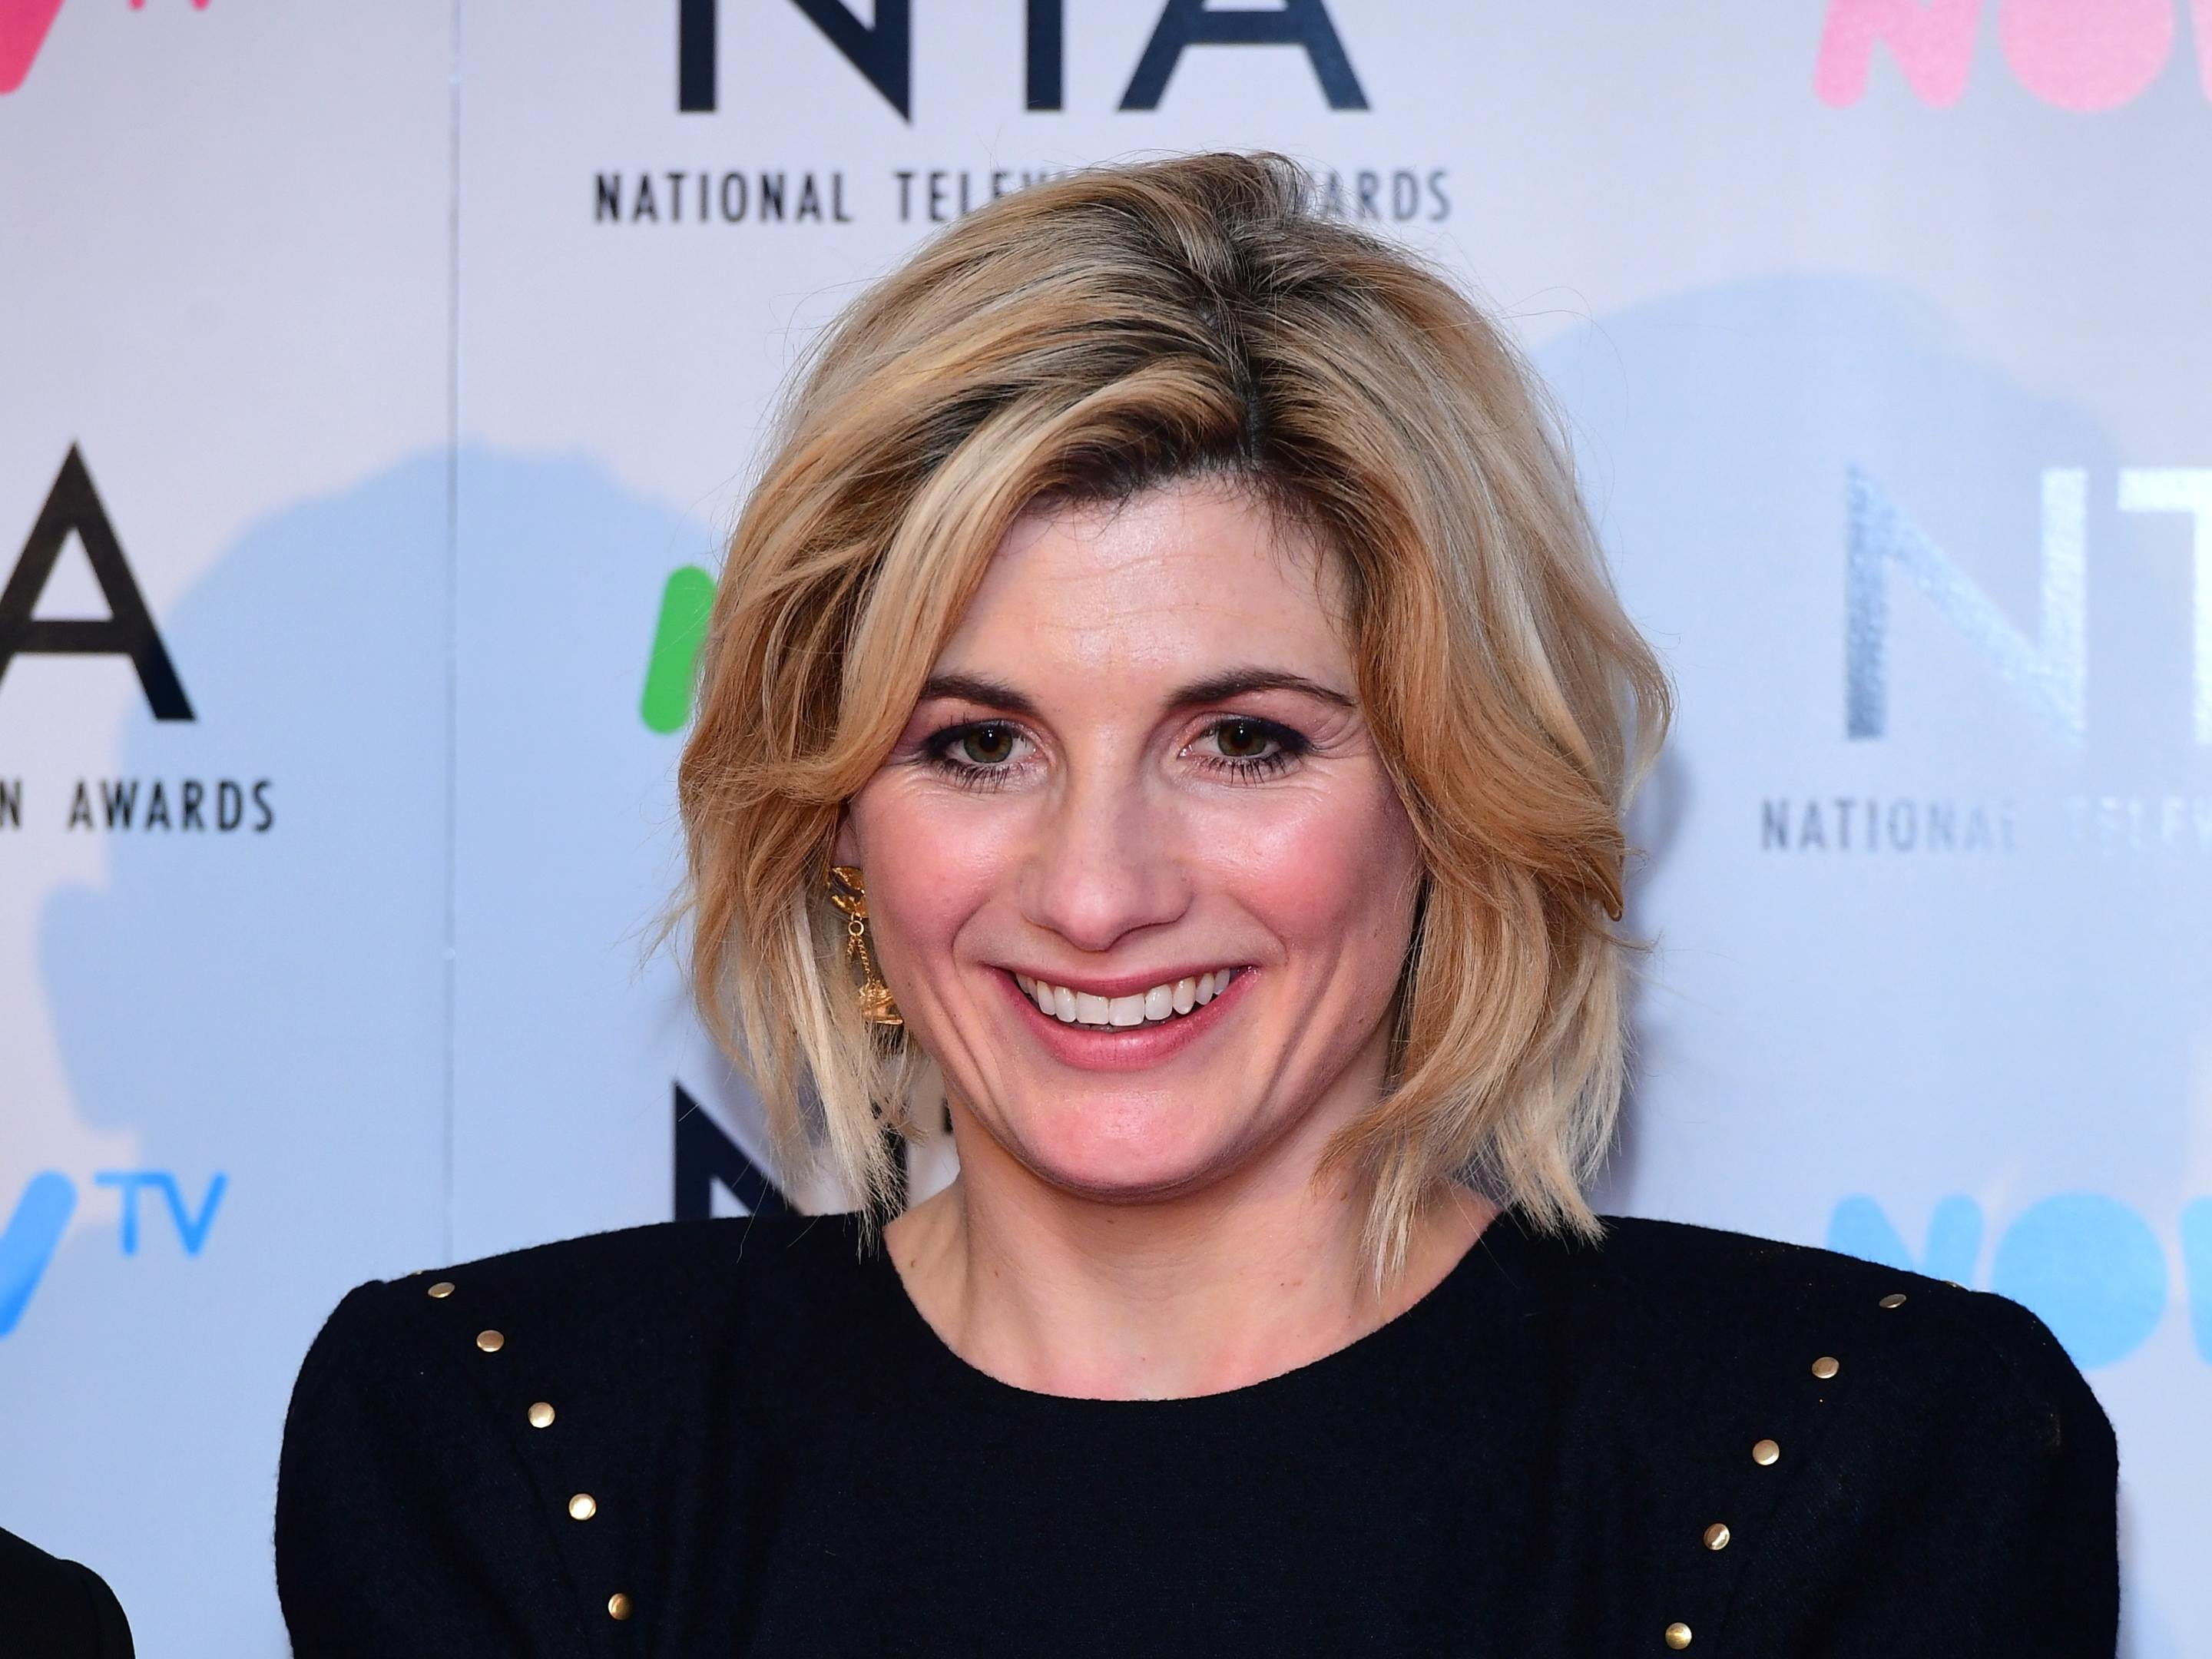 Pictures Jodie Whittaker naked (13 photo), Ass, Sideboobs, Boobs, in bikini 2017